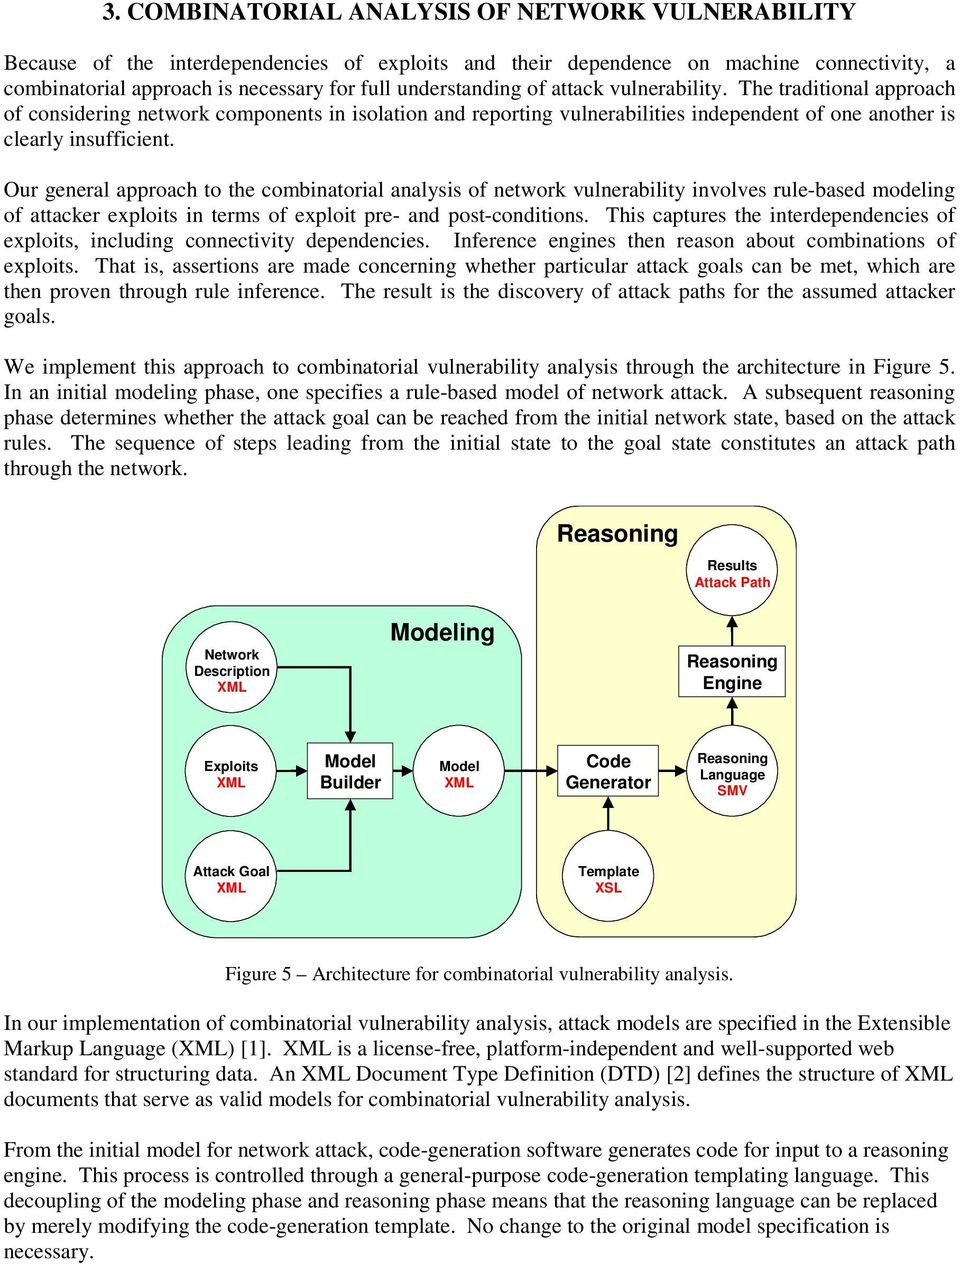 Combinatorial Analysis of Network Security - PDF